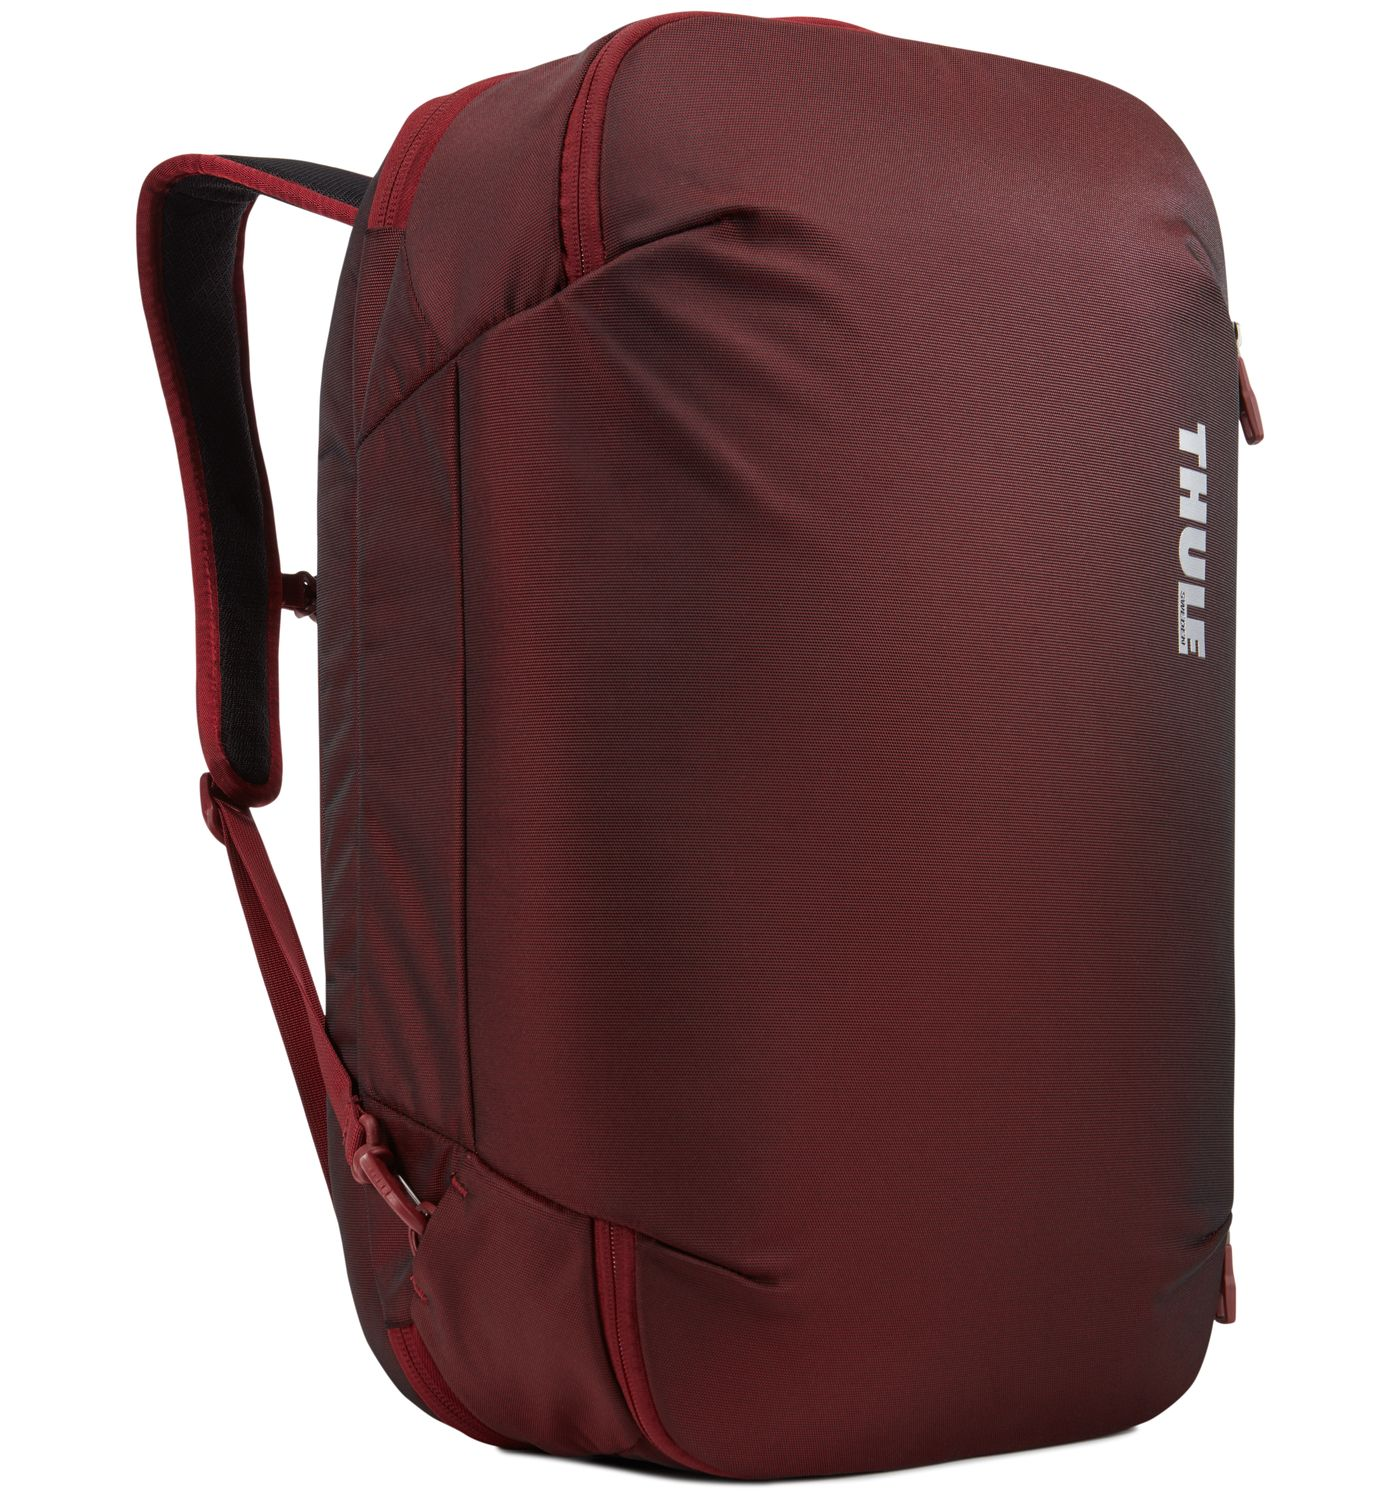 Thule Subterra 40L Convertible Carry-On